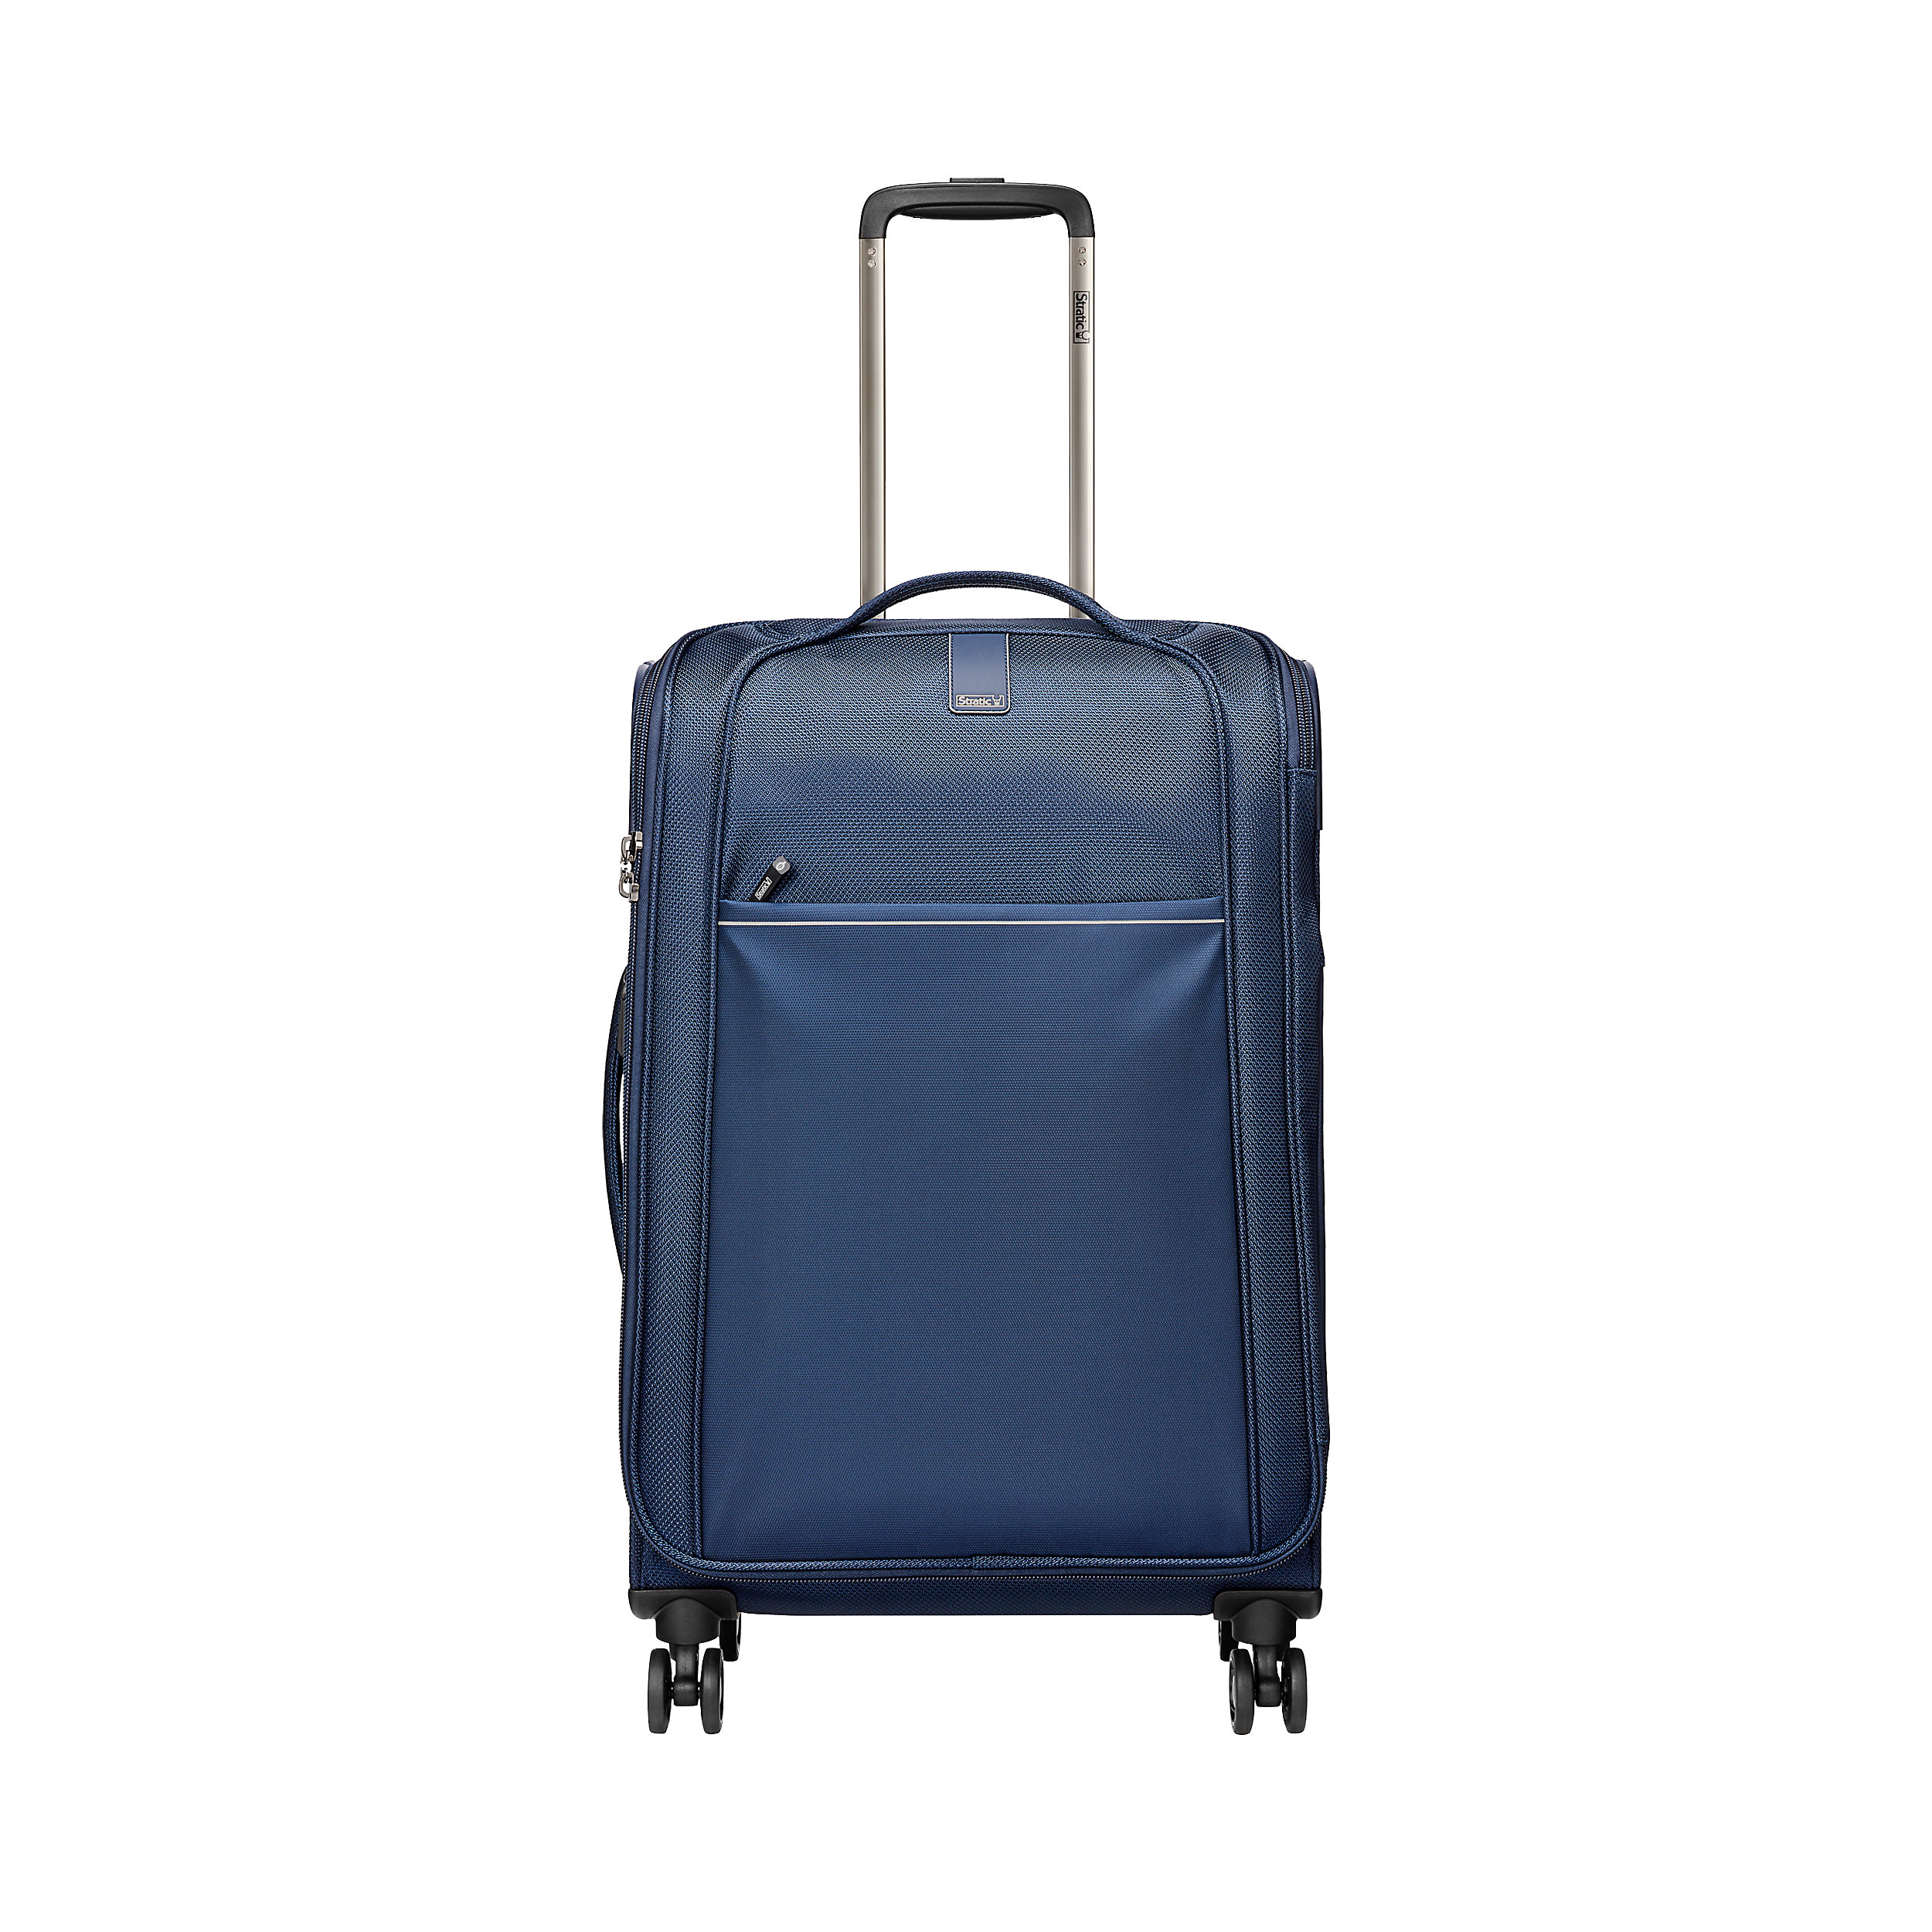 Trolley with 4 wheels 70 cm Expandable with 4 wheels Unbeatable 4 M 68 Liter